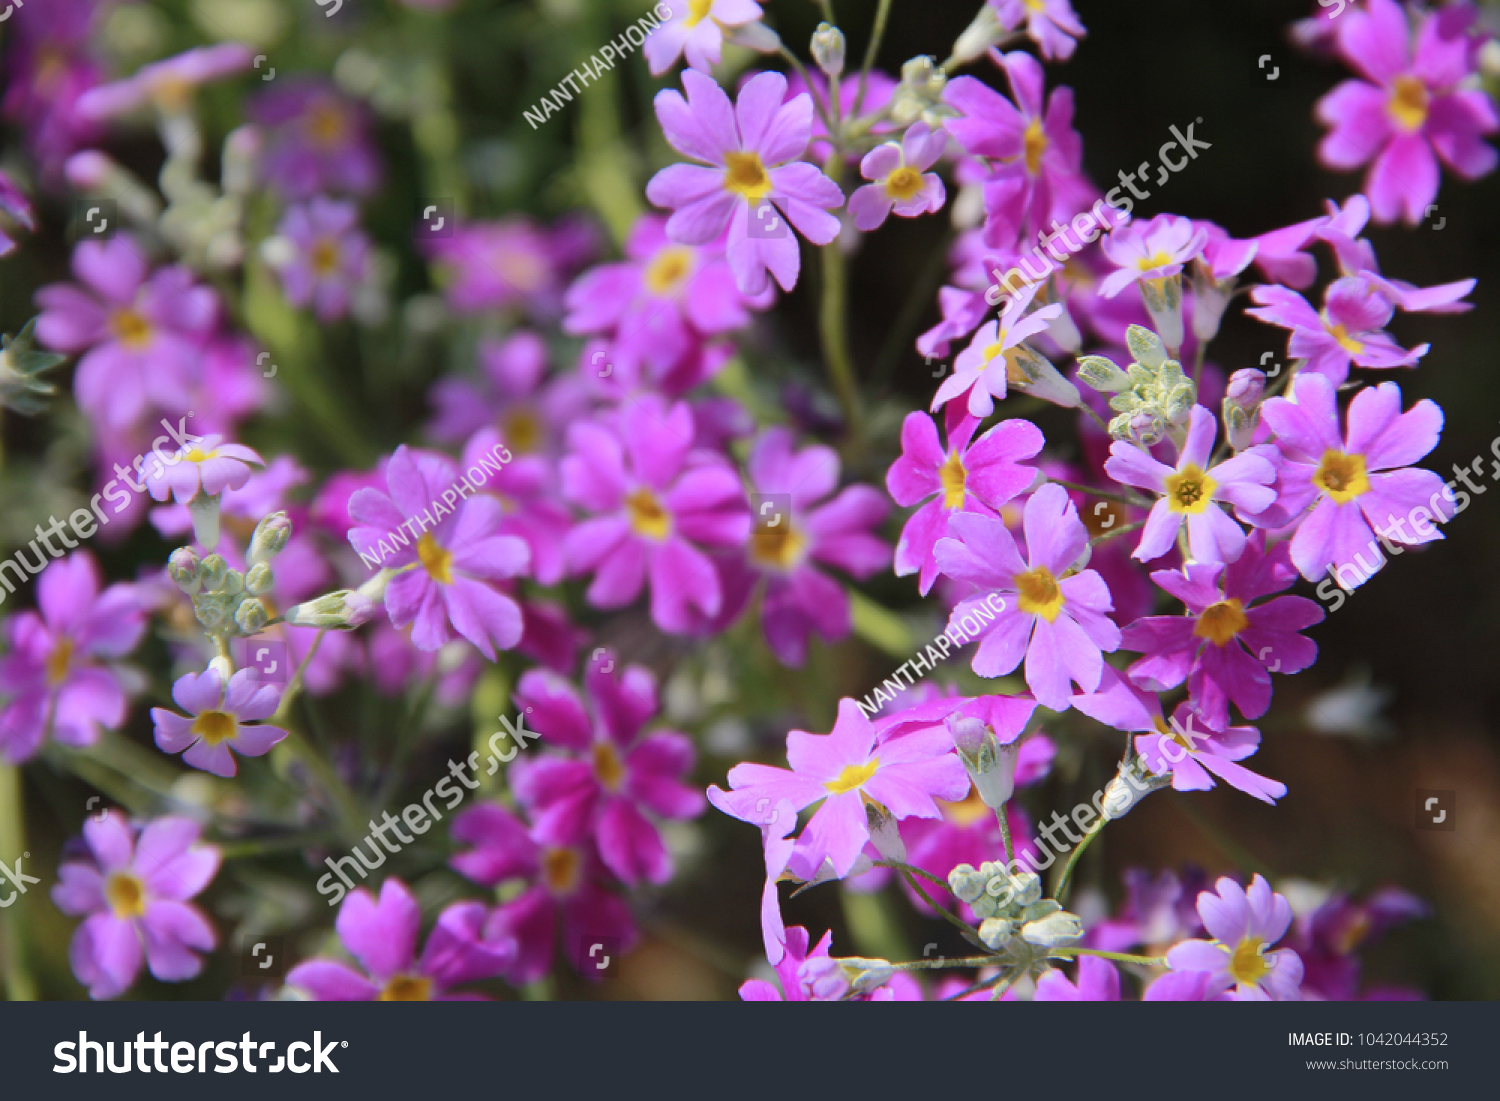 Beauty nature flowers multicolored petals often stock photo edit the beauty of nature with flowers with multi colored petals is often blossomed in the izmirmasajfo